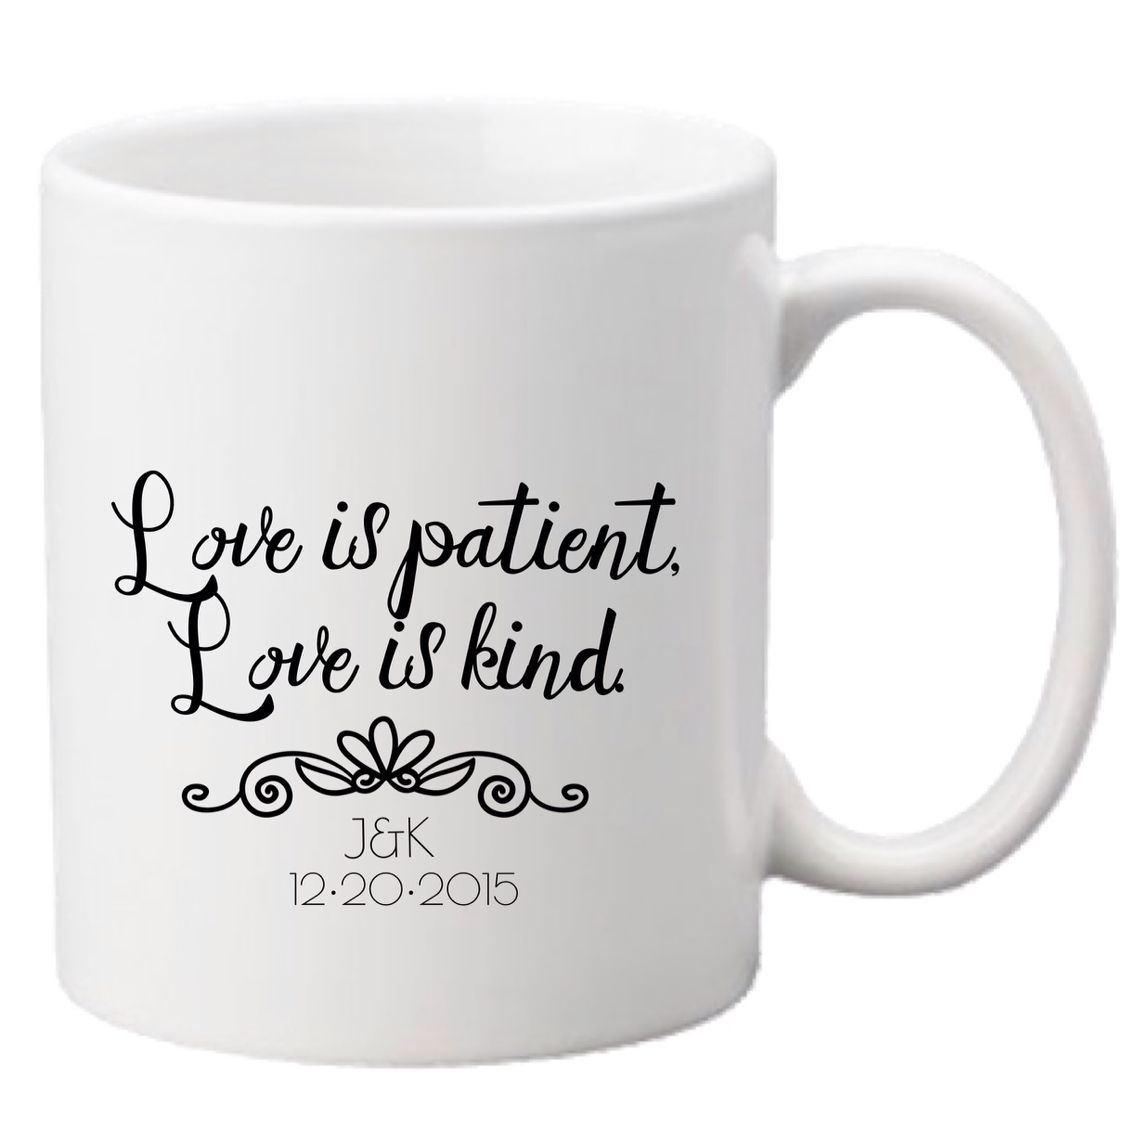 Wedding Souvenir Wedding Mugs Best Wedding Favors Wedding Things